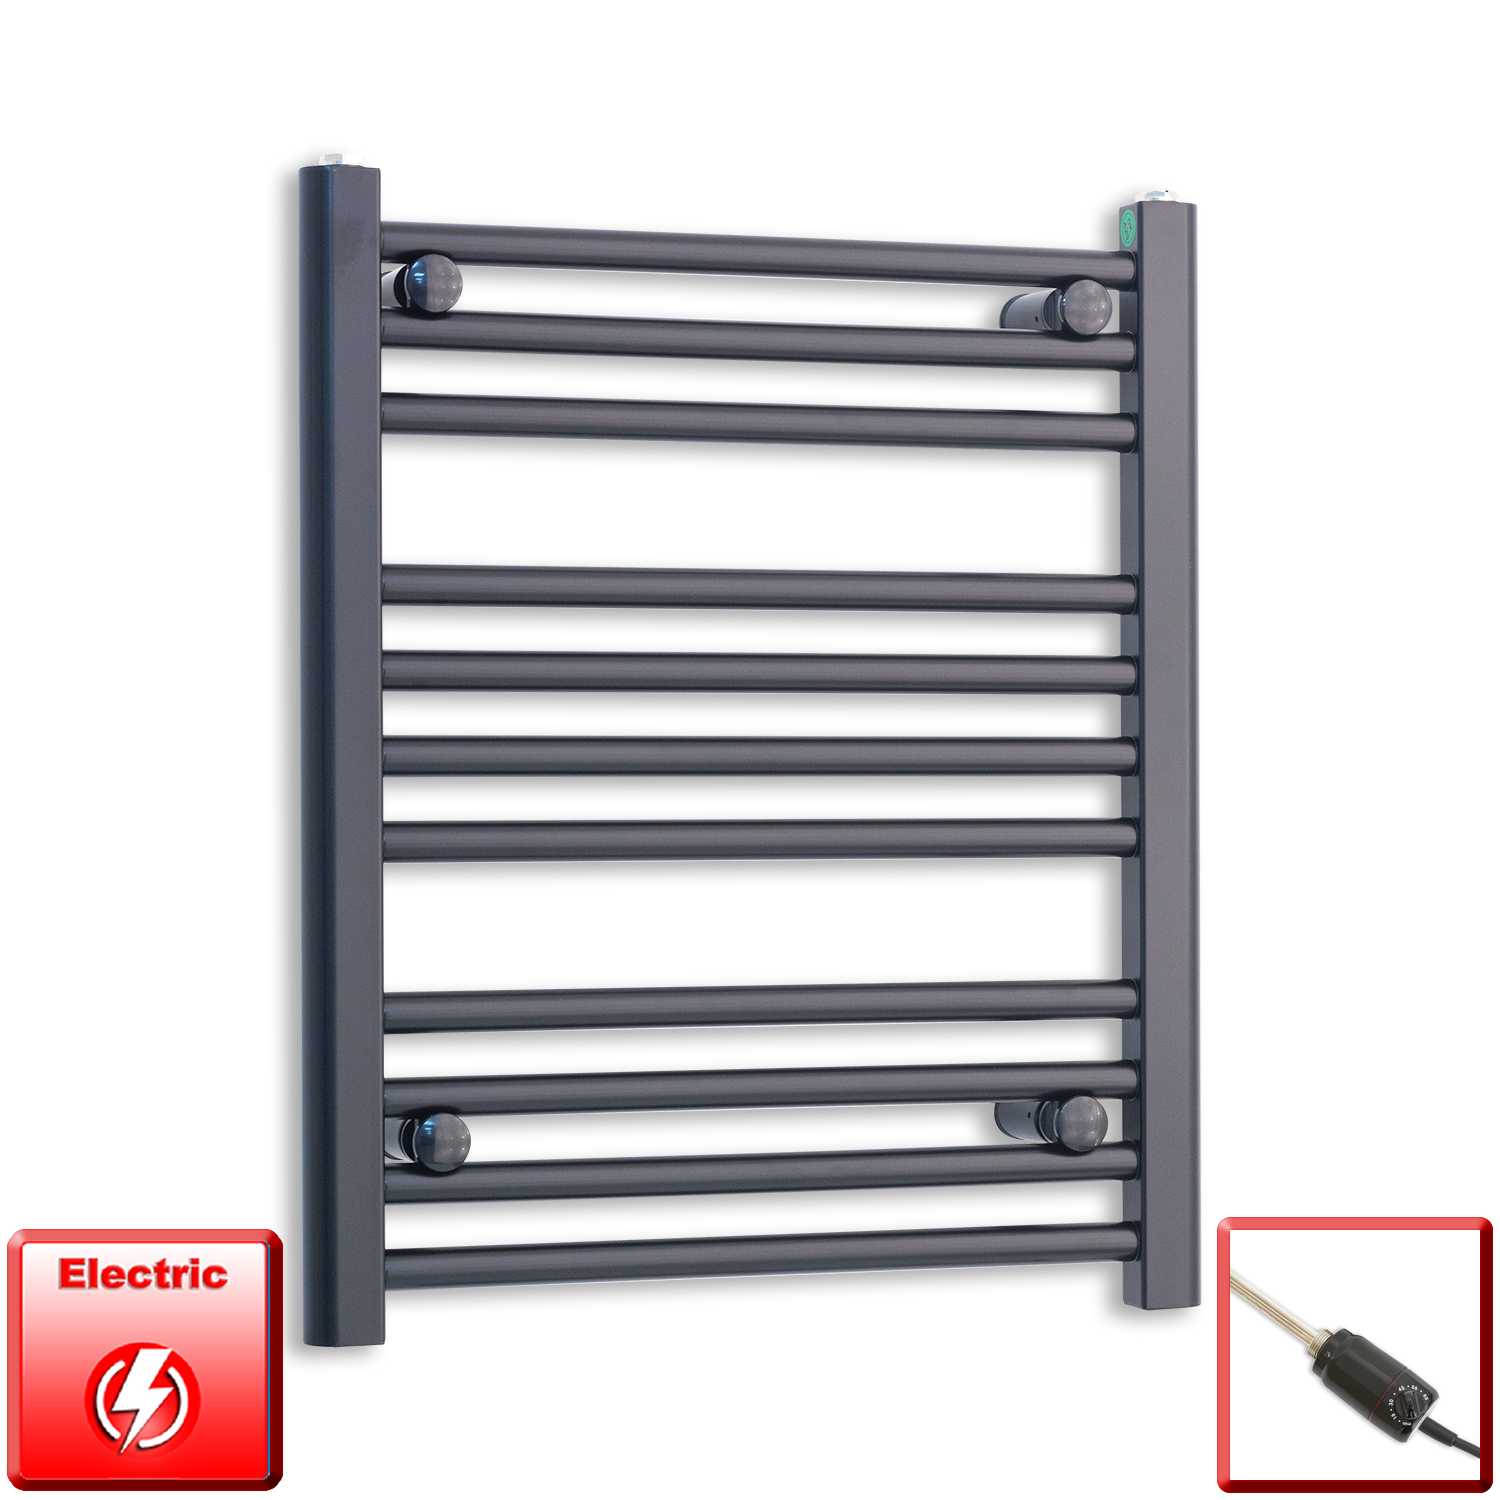 600mm Wide 600mm High Pre-Filled Black Electric Towel Rail Radiator With Thermostatic GT Element